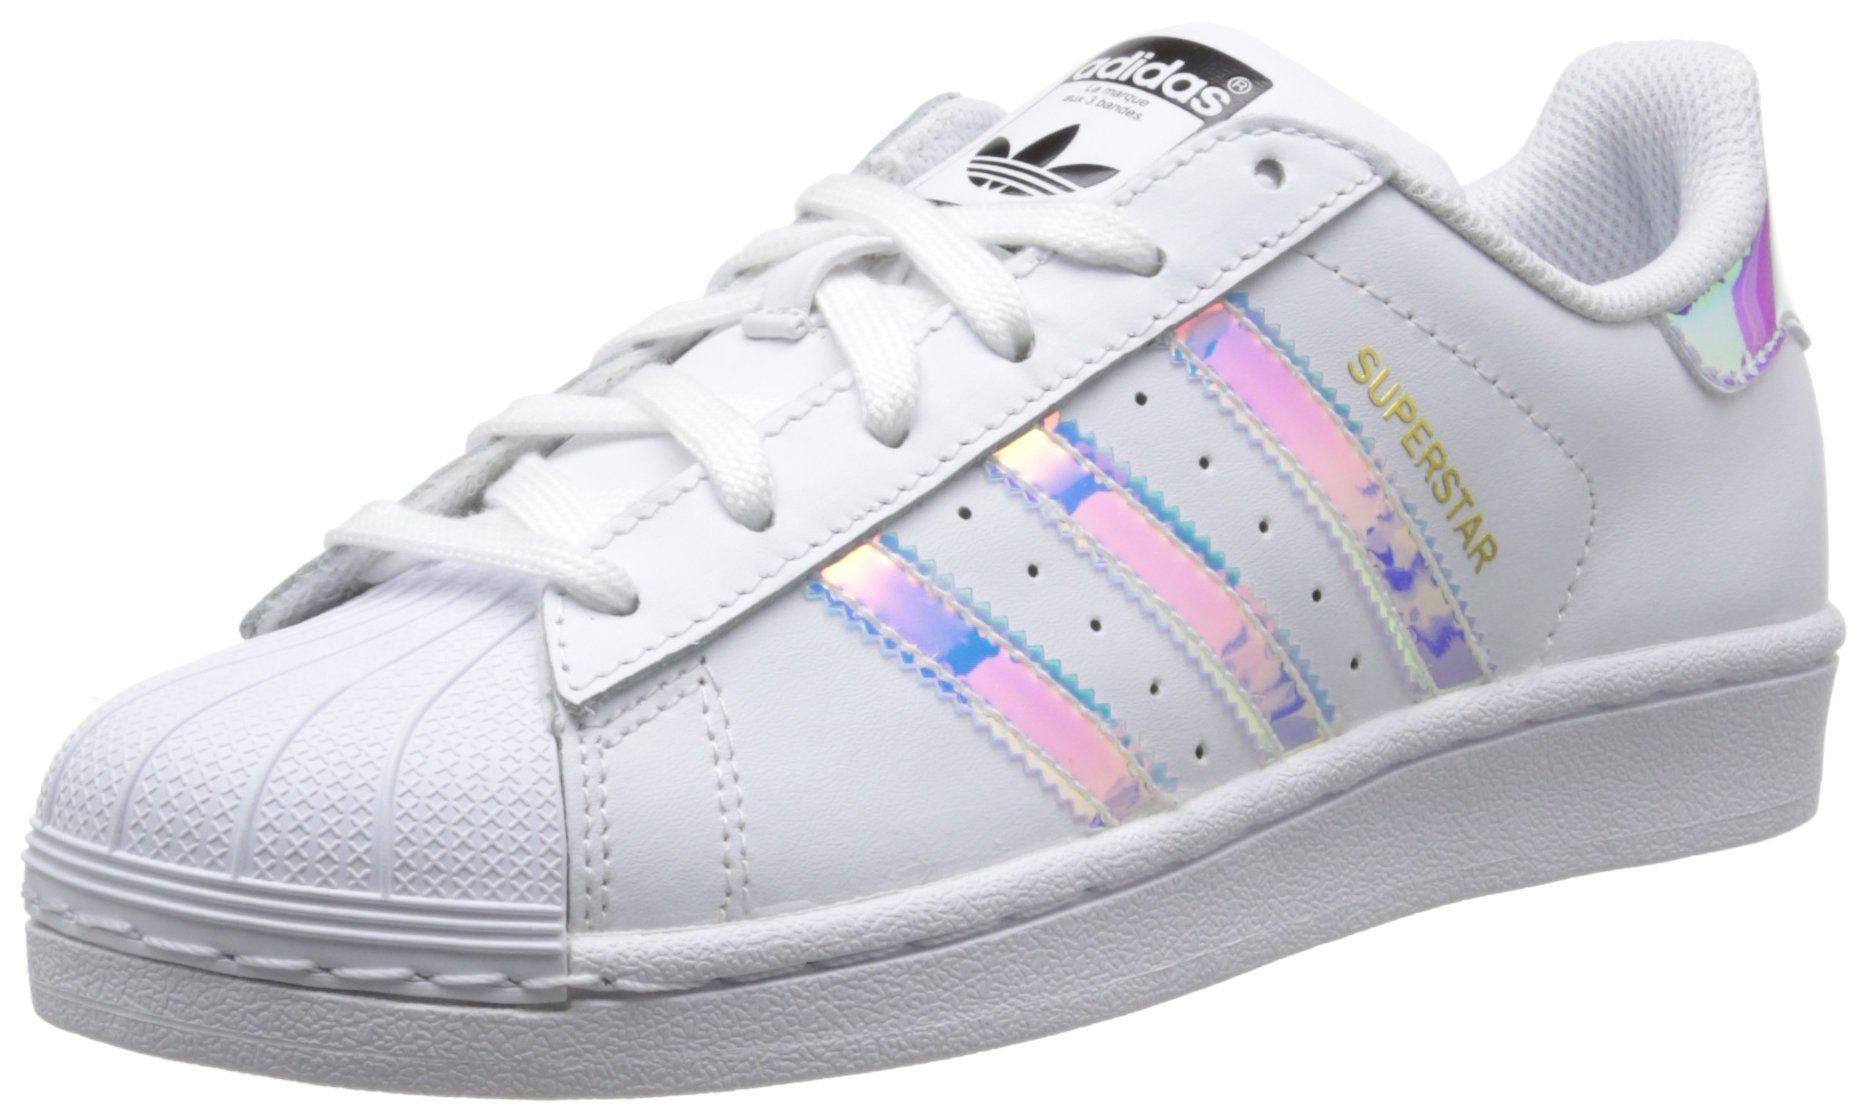 best service e19b4 86491 adidas Originals Superstar BB2872, Sneakers Unisex - Bambini. Da ADIDAS  ORIGINALS